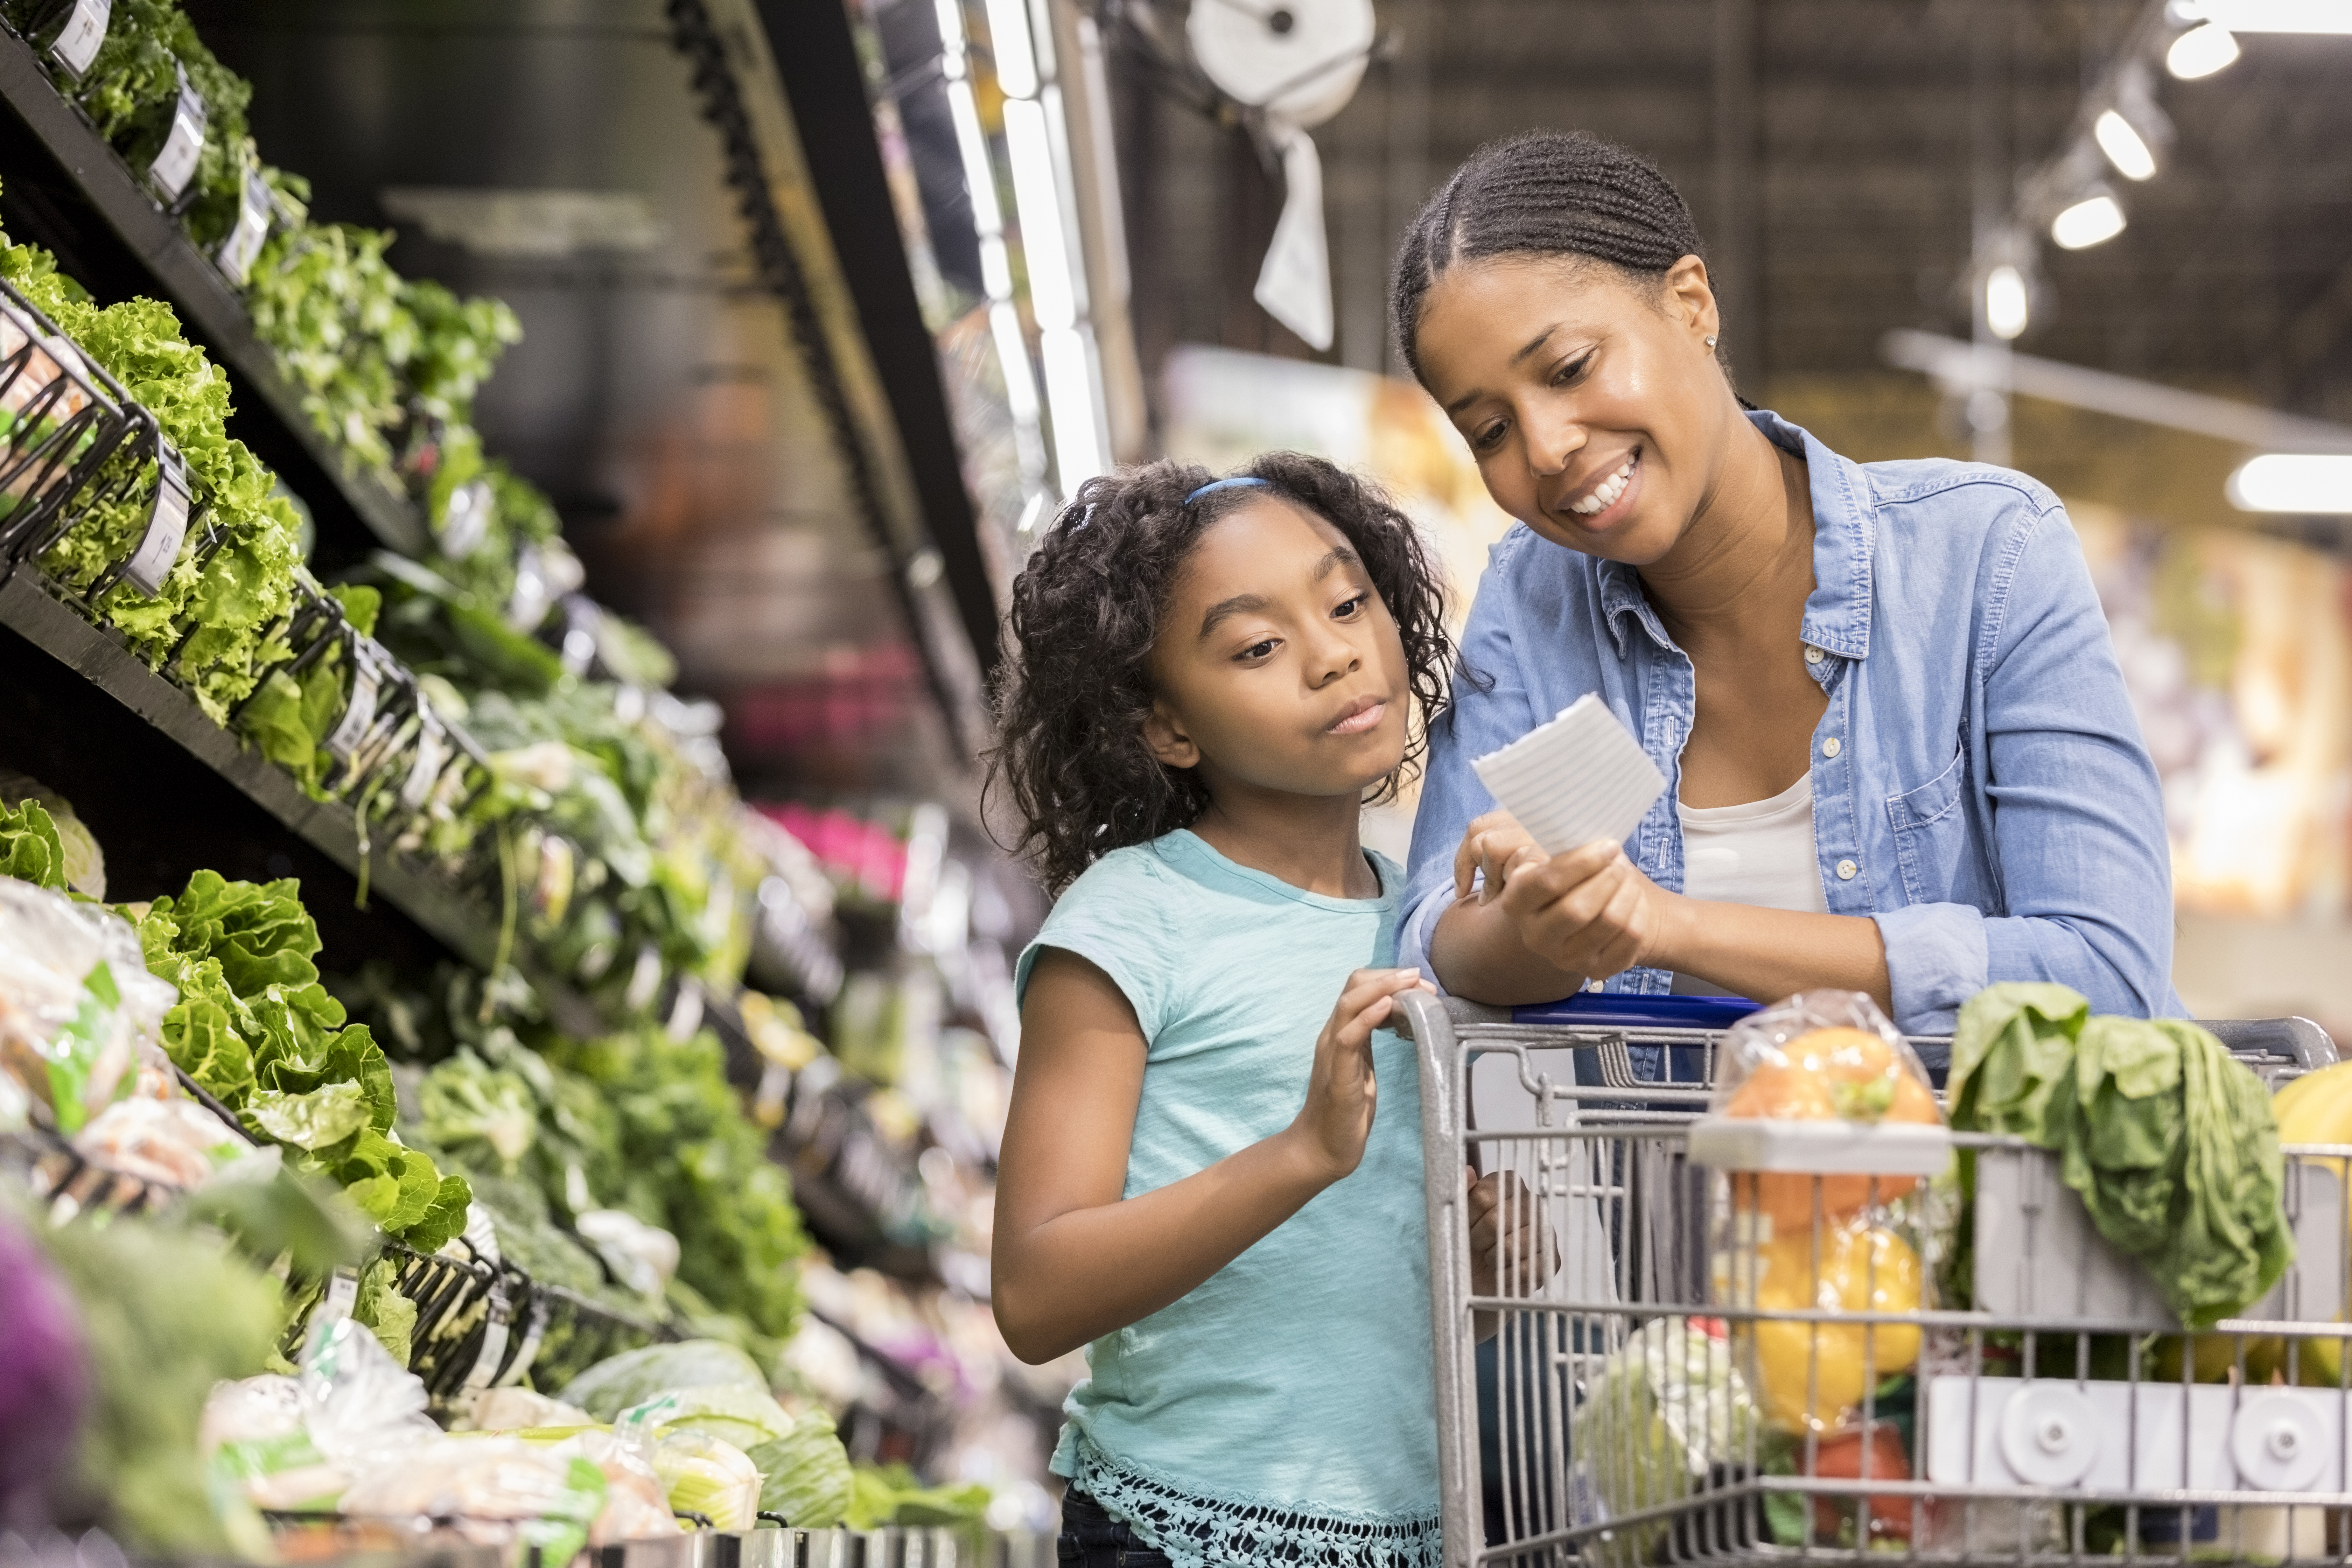 Mom and daughter looking at a grocery list in the produce section